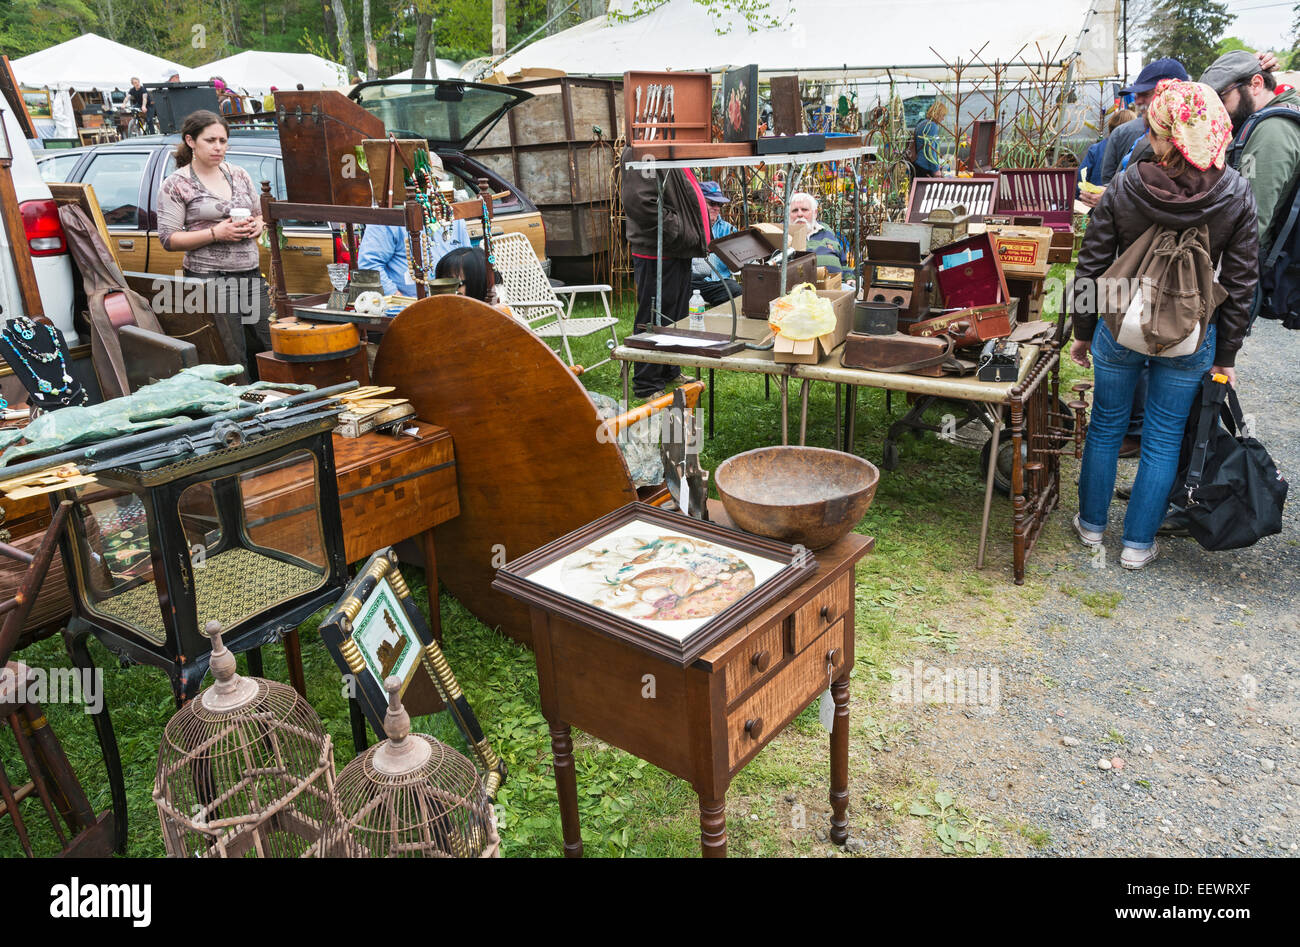 massachusetts brimfield antique flea market stock photo